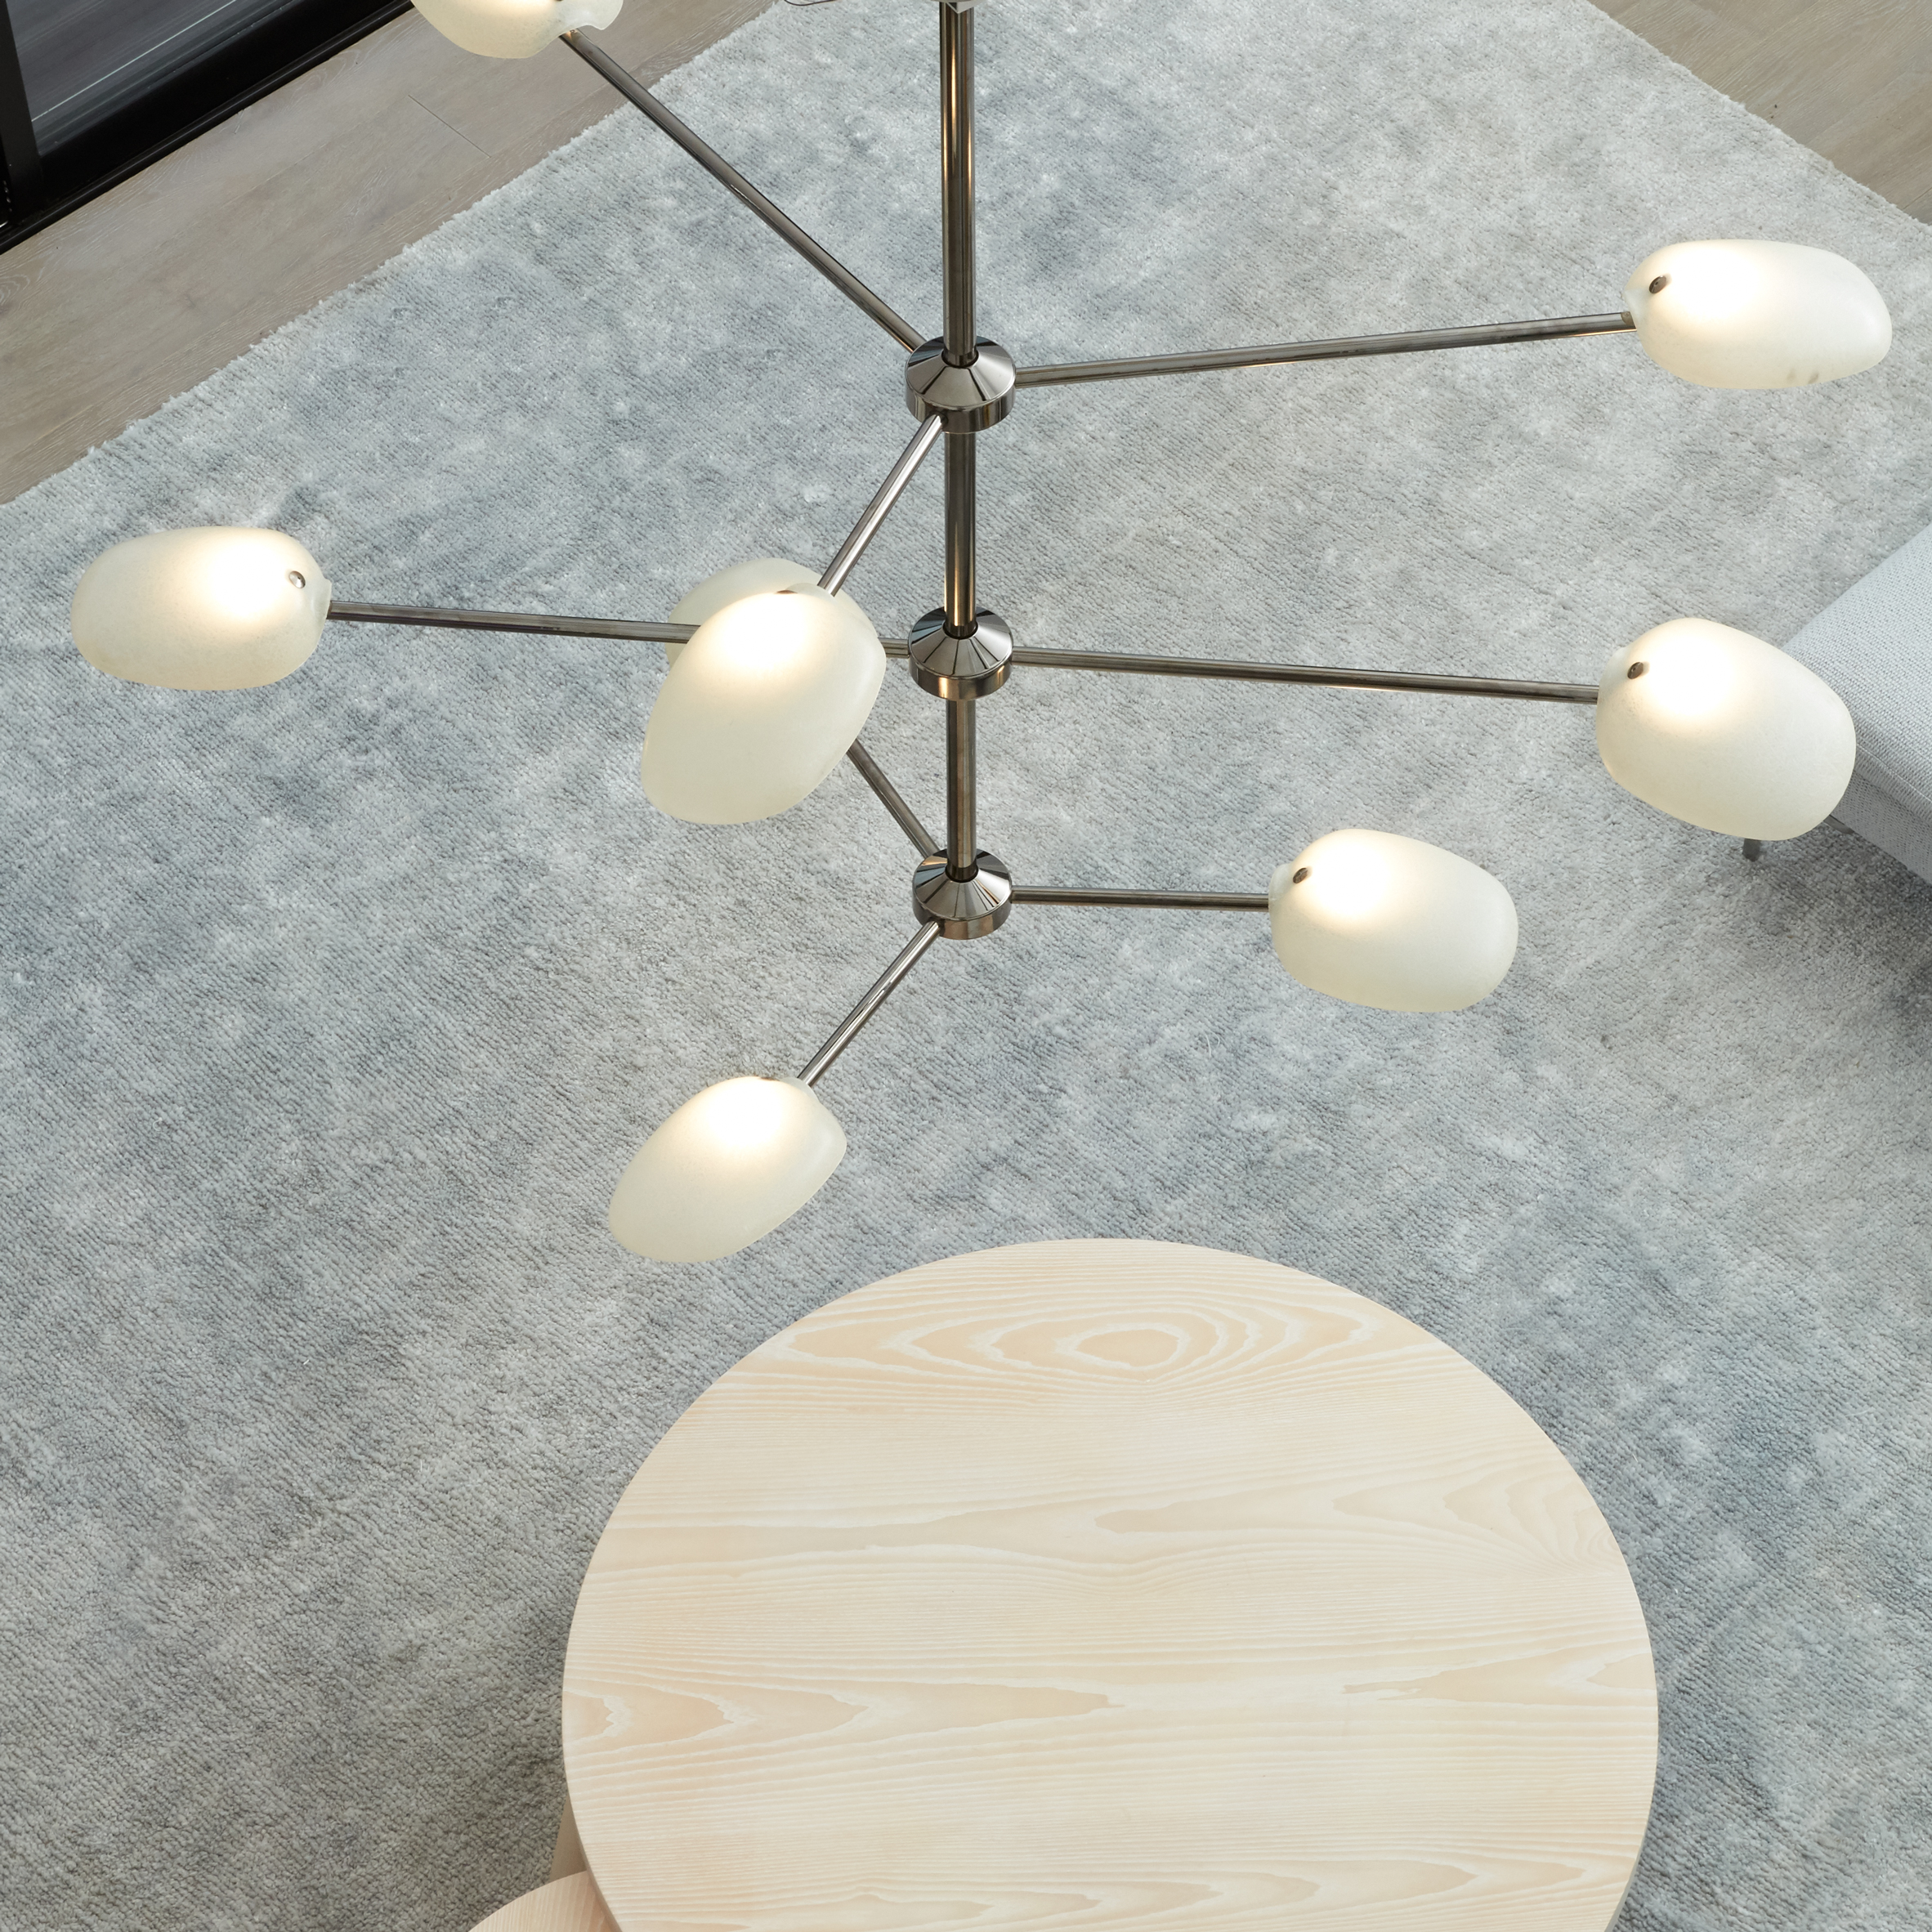 watch 4f8c4 a7828 Rich Brilliant Willing launches modernist-style chandelier ...